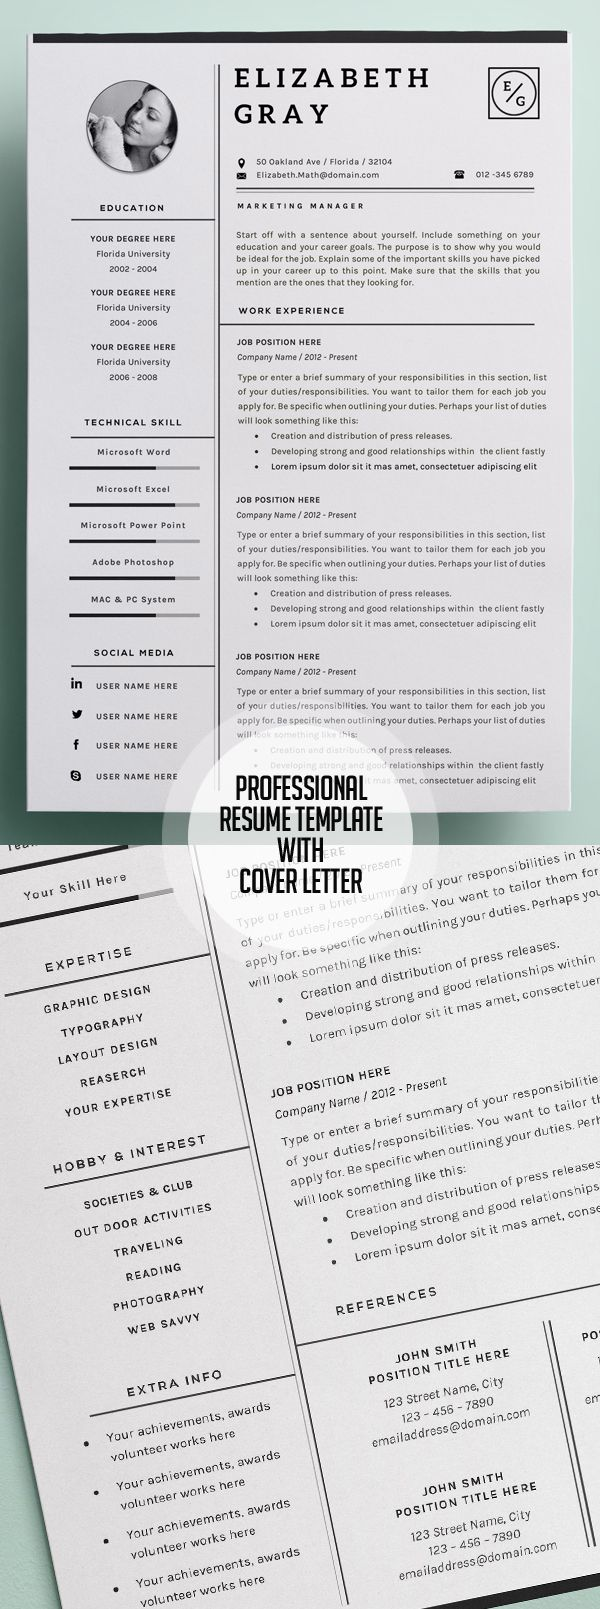 Opposenewapstandardsus  Inspiring  Resume Ideas On Pinterest  Resume Resume Templates And  With Handsome Professional And Modern Resume Template With Page Cover Cvtemplate With Archaic How To Create A Great Resume Also Resume Templates For Pages In Addition Tax Preparer Resume And Direct Support Professional Resume As Well As Database Administrator Resume Additionally Pdf Resume Template From Pinterestcom With Opposenewapstandardsus  Handsome  Resume Ideas On Pinterest  Resume Resume Templates And  With Archaic Professional And Modern Resume Template With Page Cover Cvtemplate And Inspiring How To Create A Great Resume Also Resume Templates For Pages In Addition Tax Preparer Resume From Pinterestcom